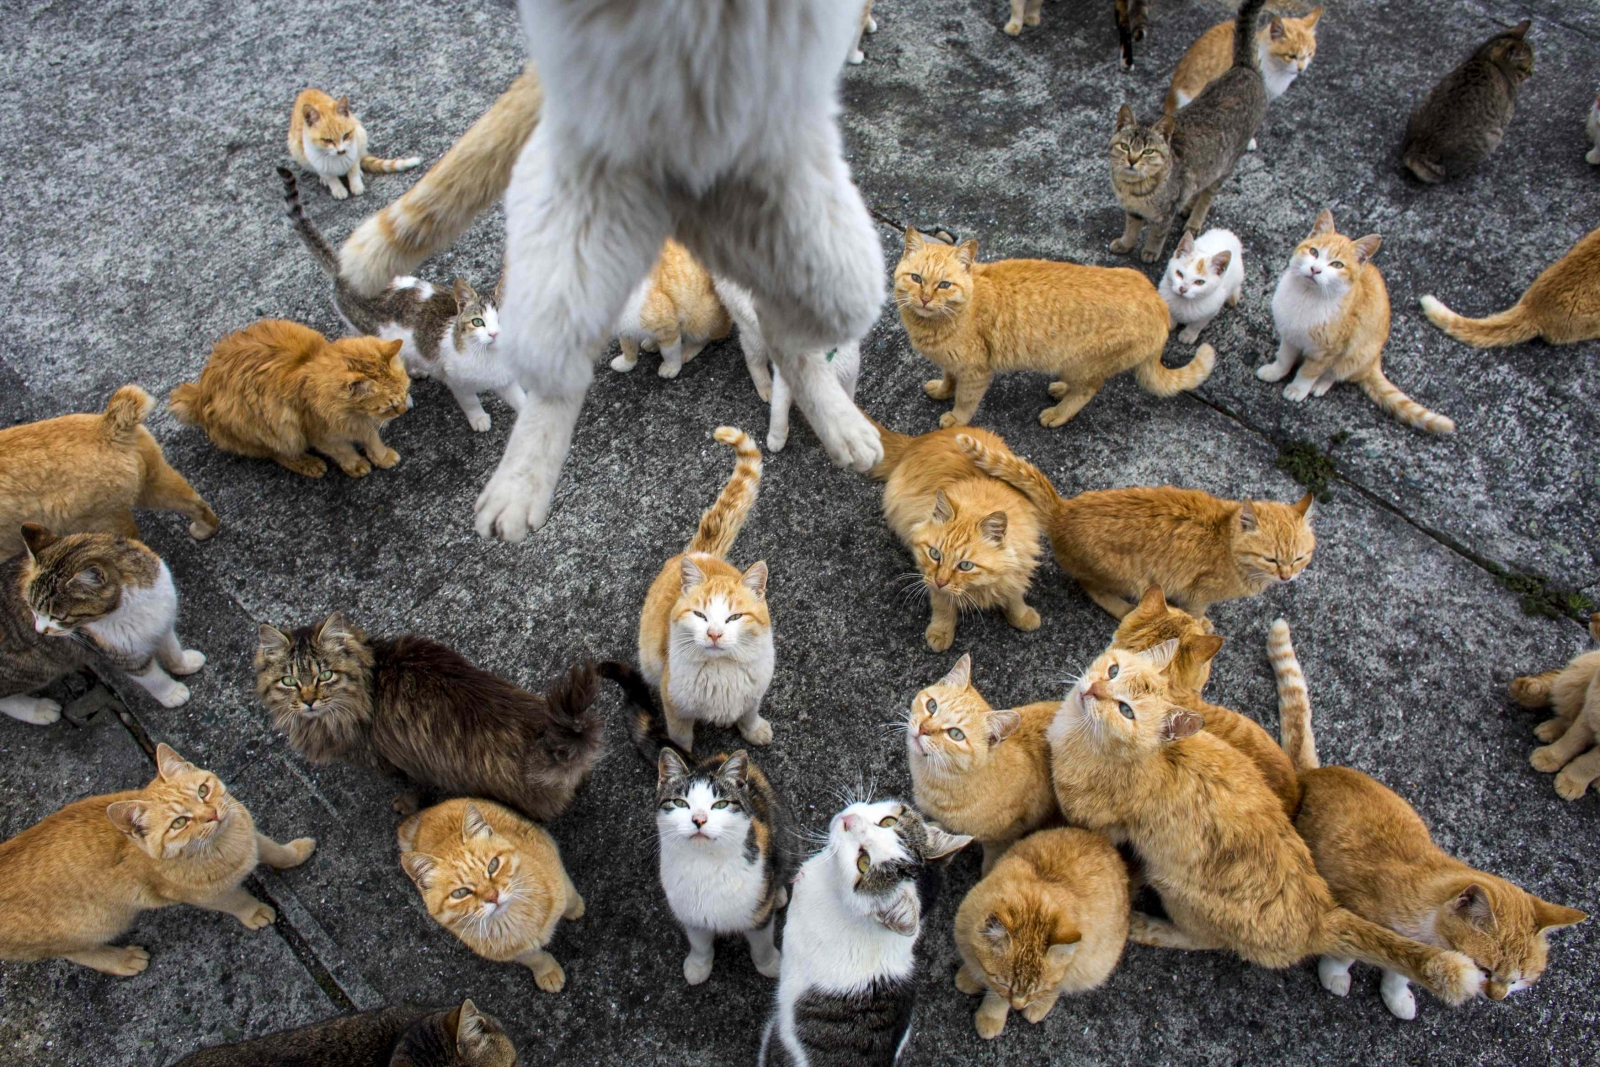 Japan: Aoshima island overrun by cats